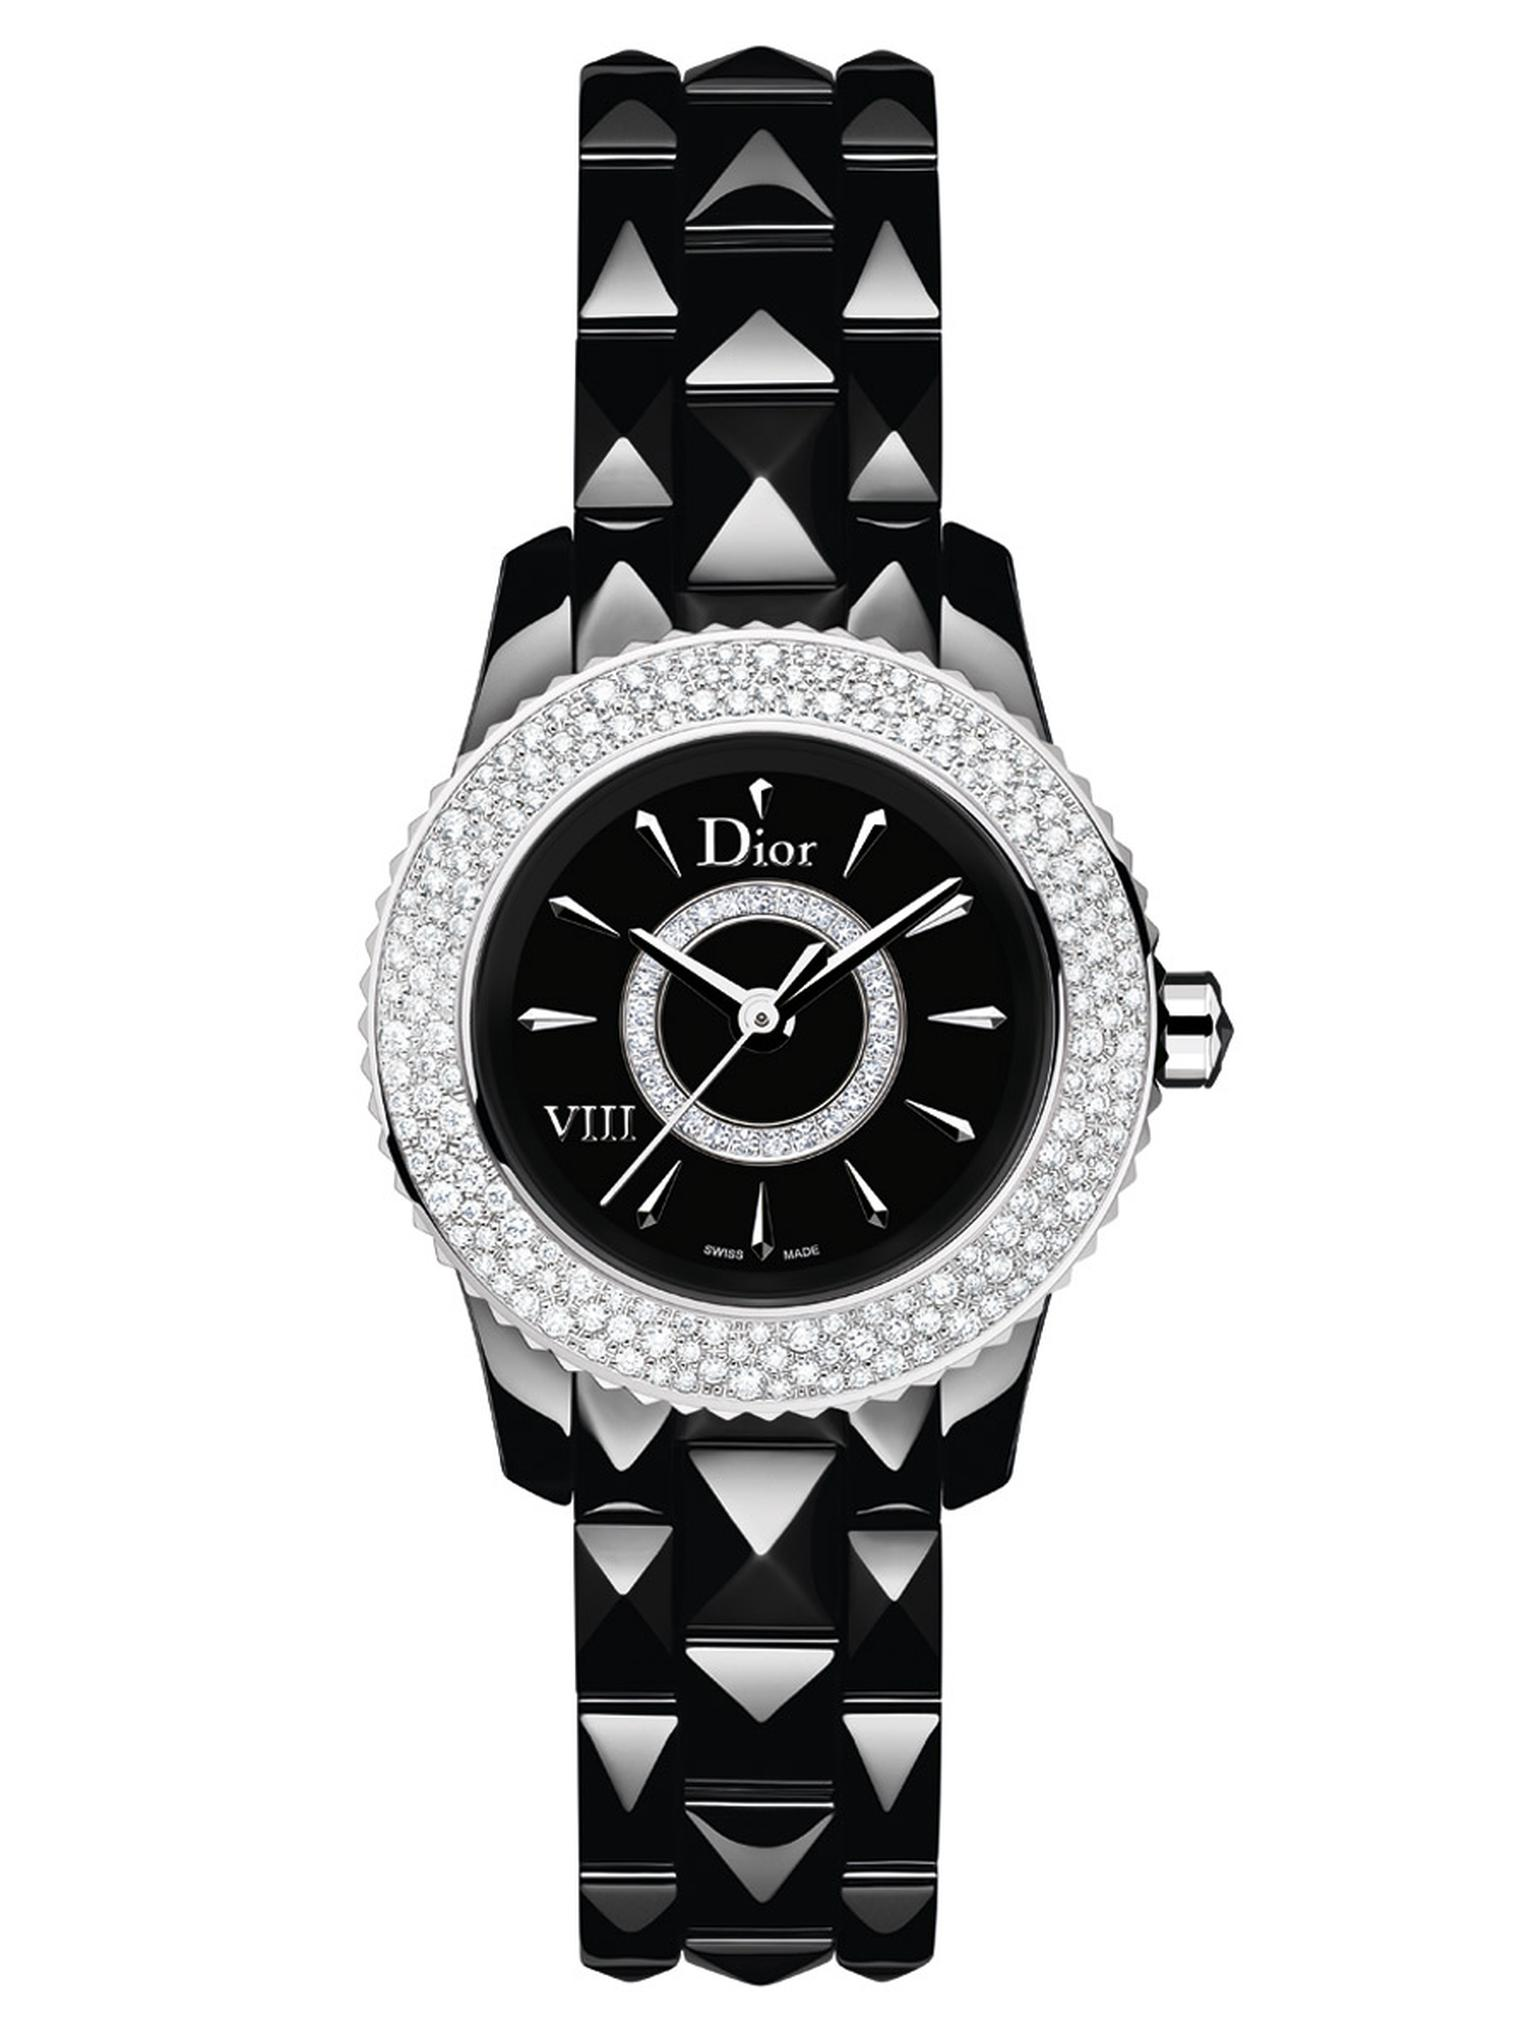 DIOR-VIII-BLACK-QUARTZ-DIAMOND-SNOW-SET-BEZEL-28mm.jpg